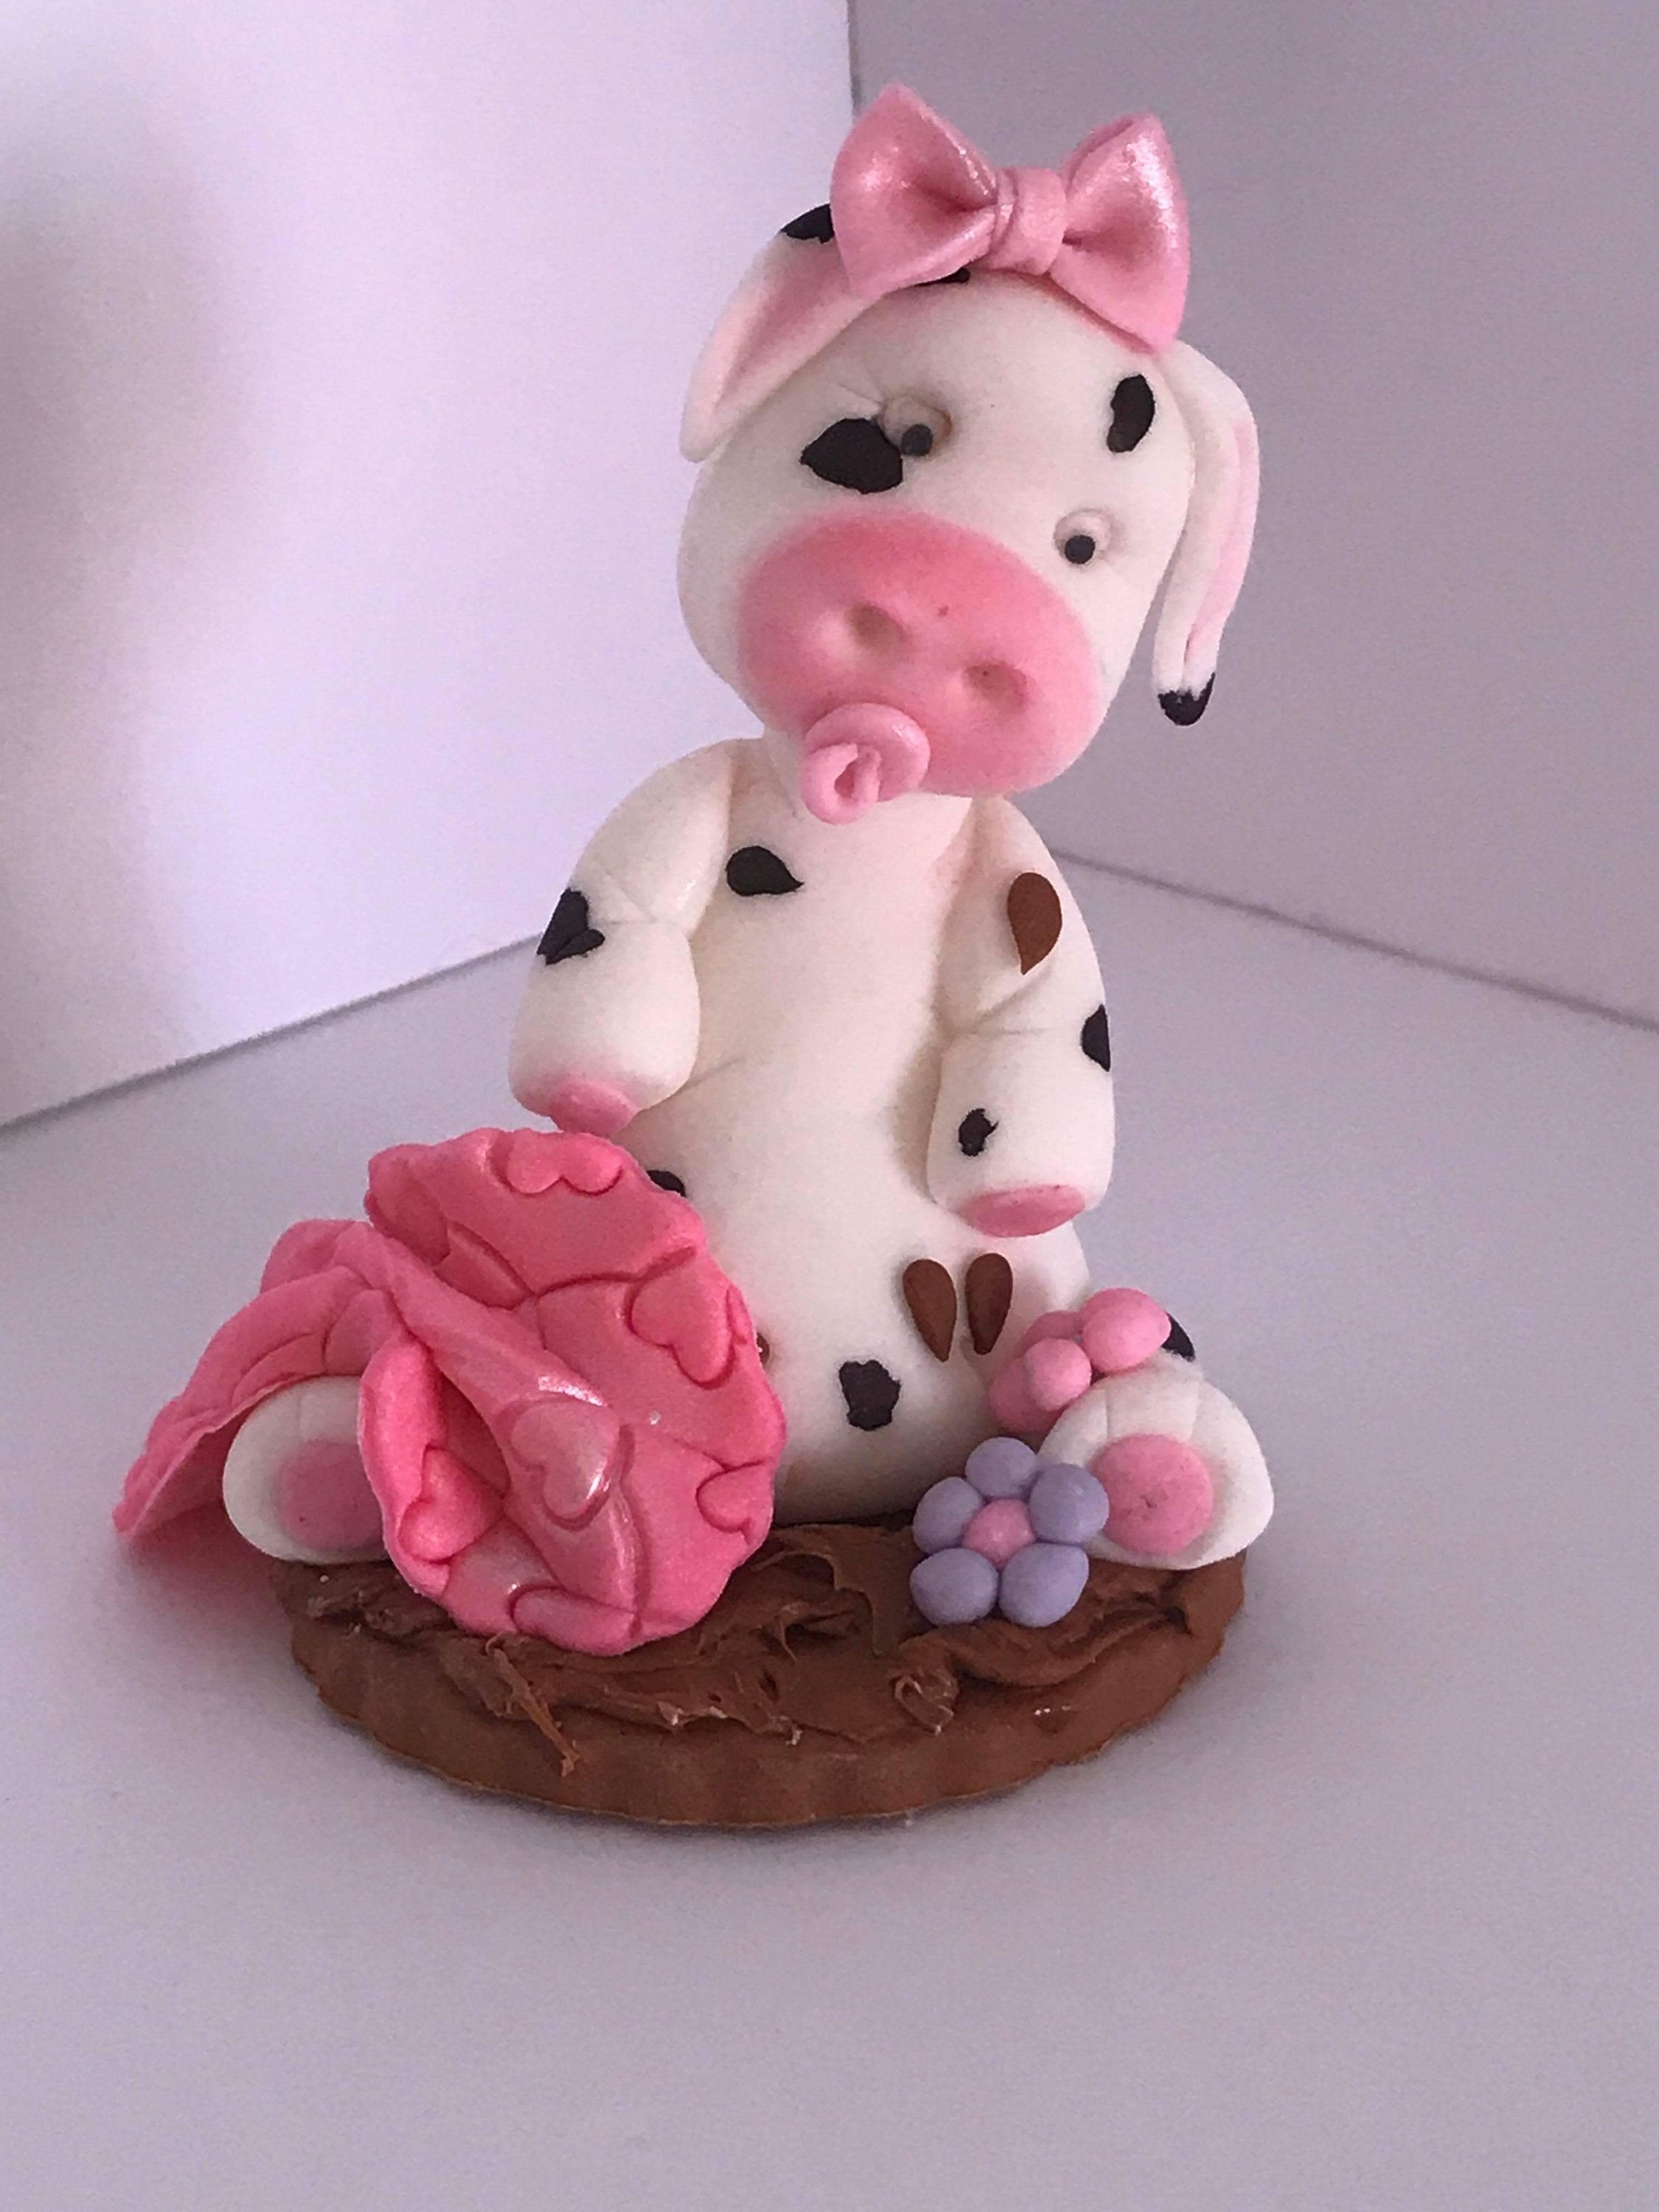 Baby cow with blanket fondant cake topper by